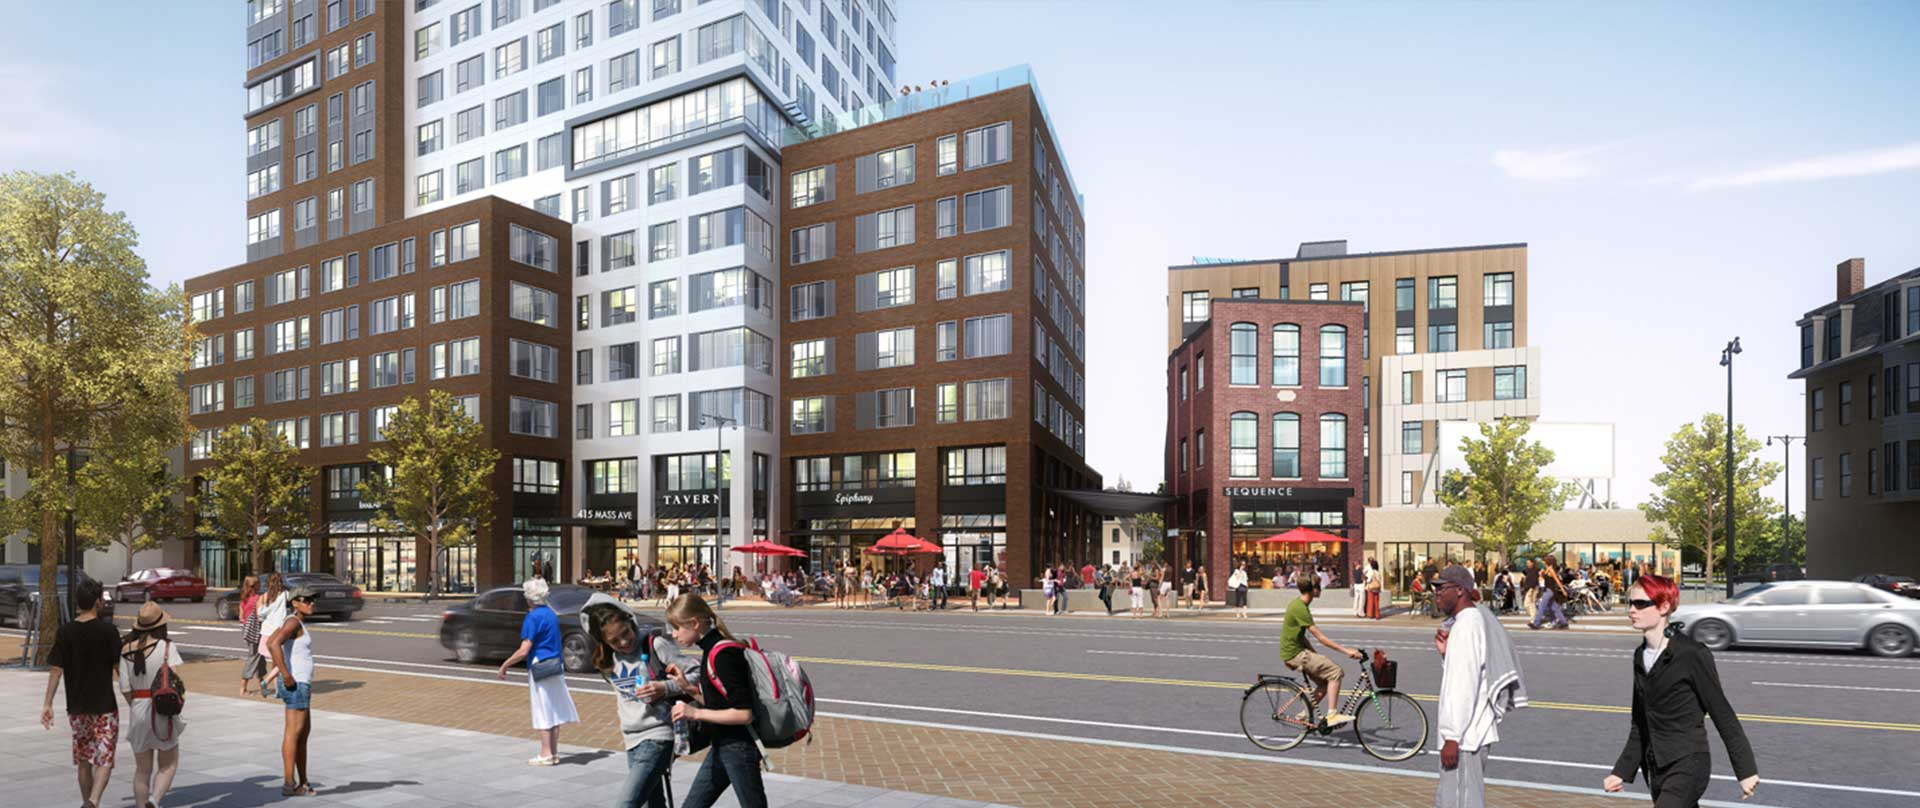 Central Square Neighborhood Rendering